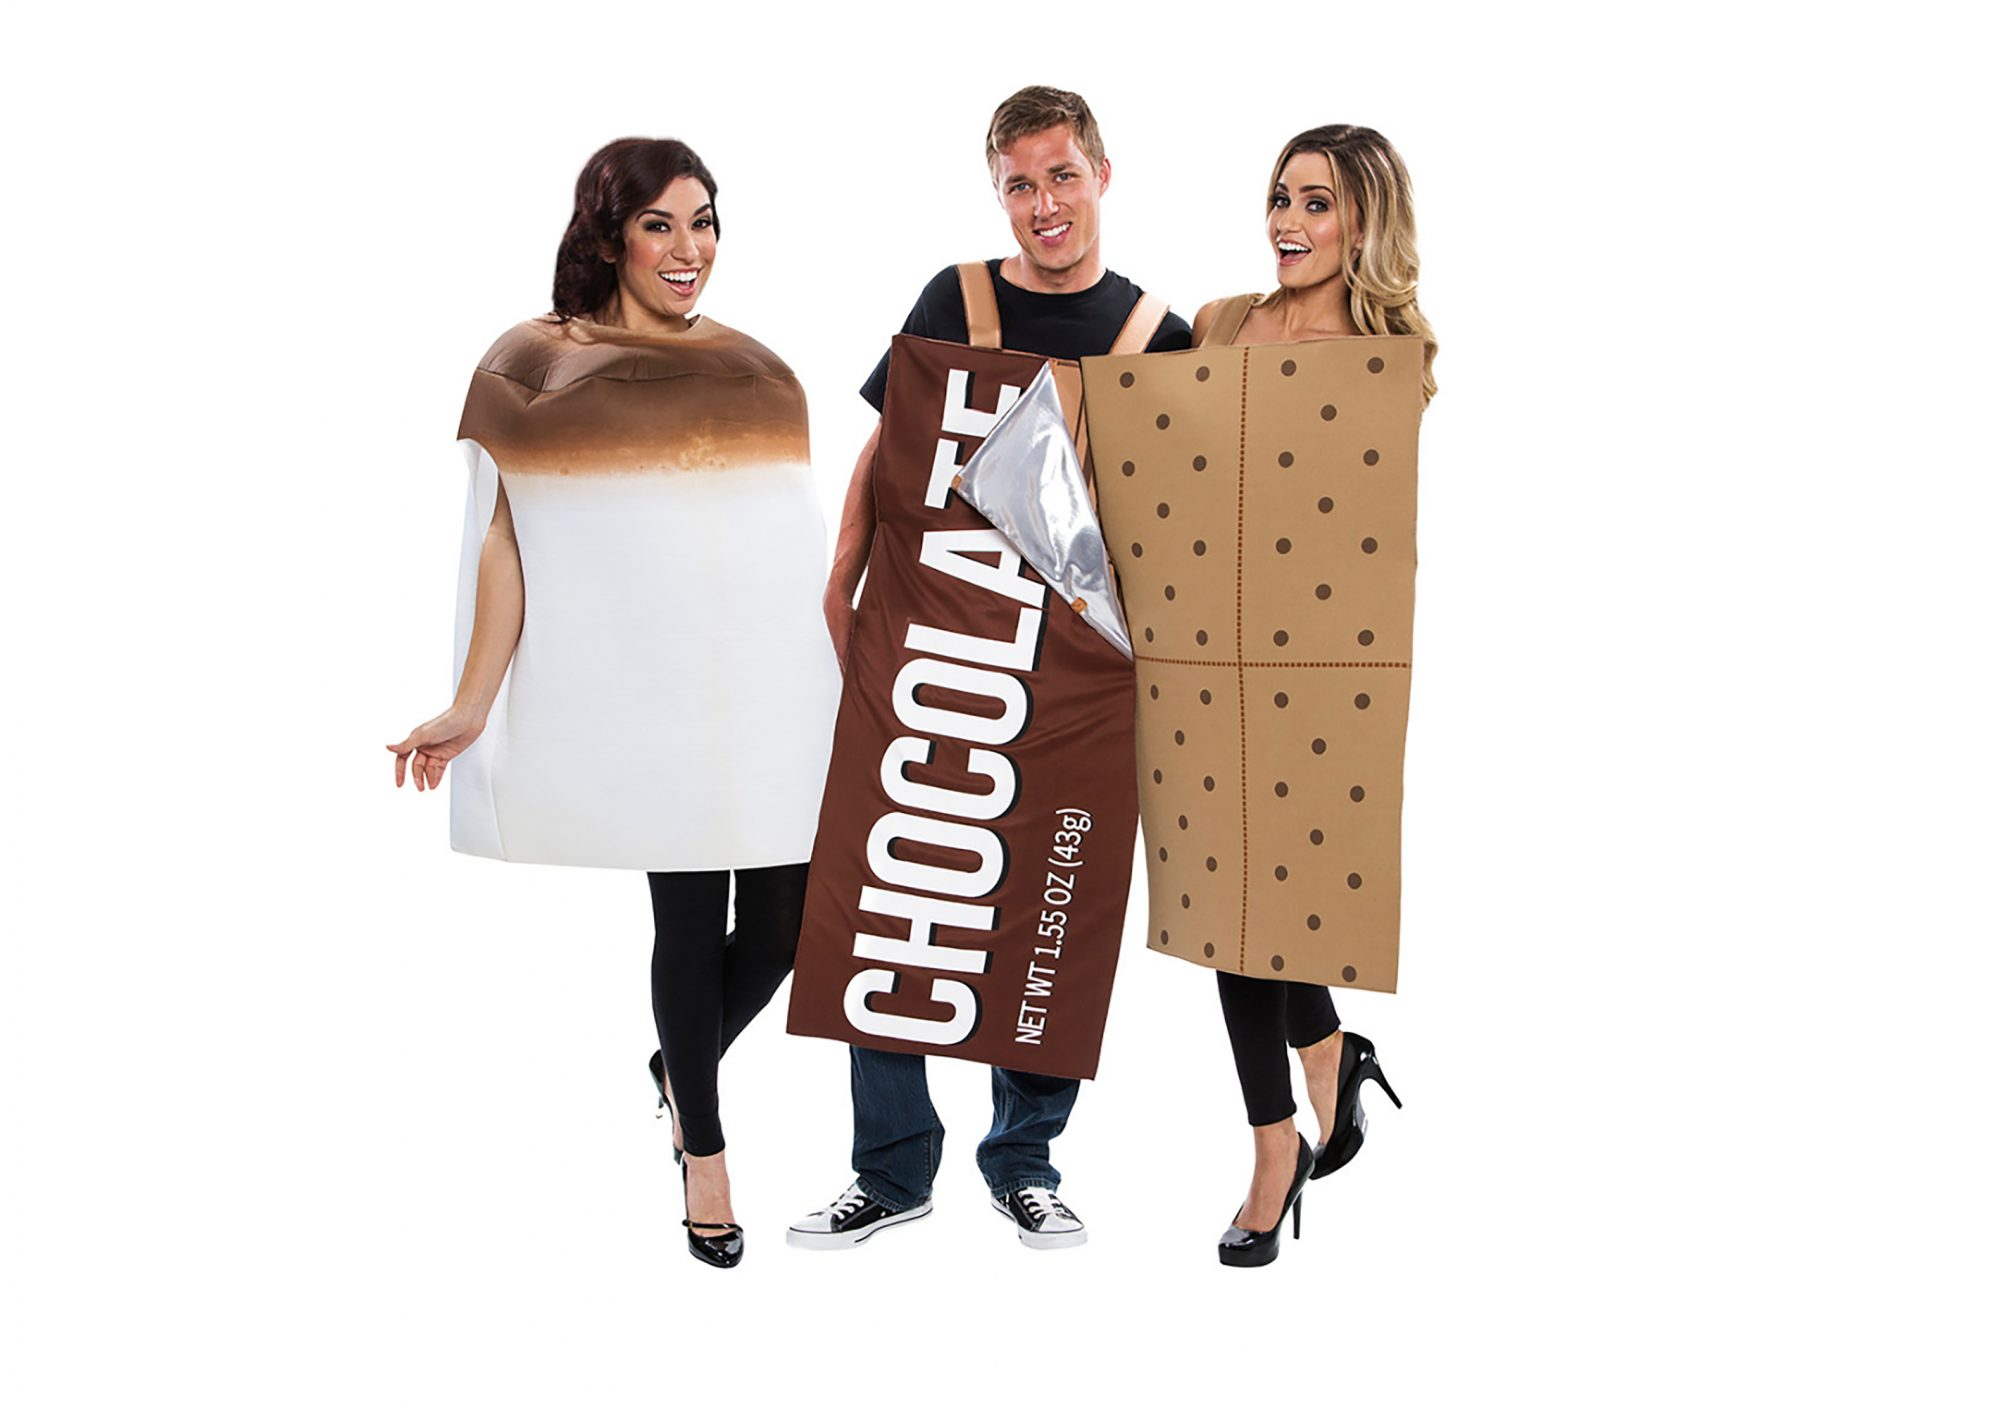 Ship These Adorable (and Discounted!) Food-Themed Costumes Right To Your Door